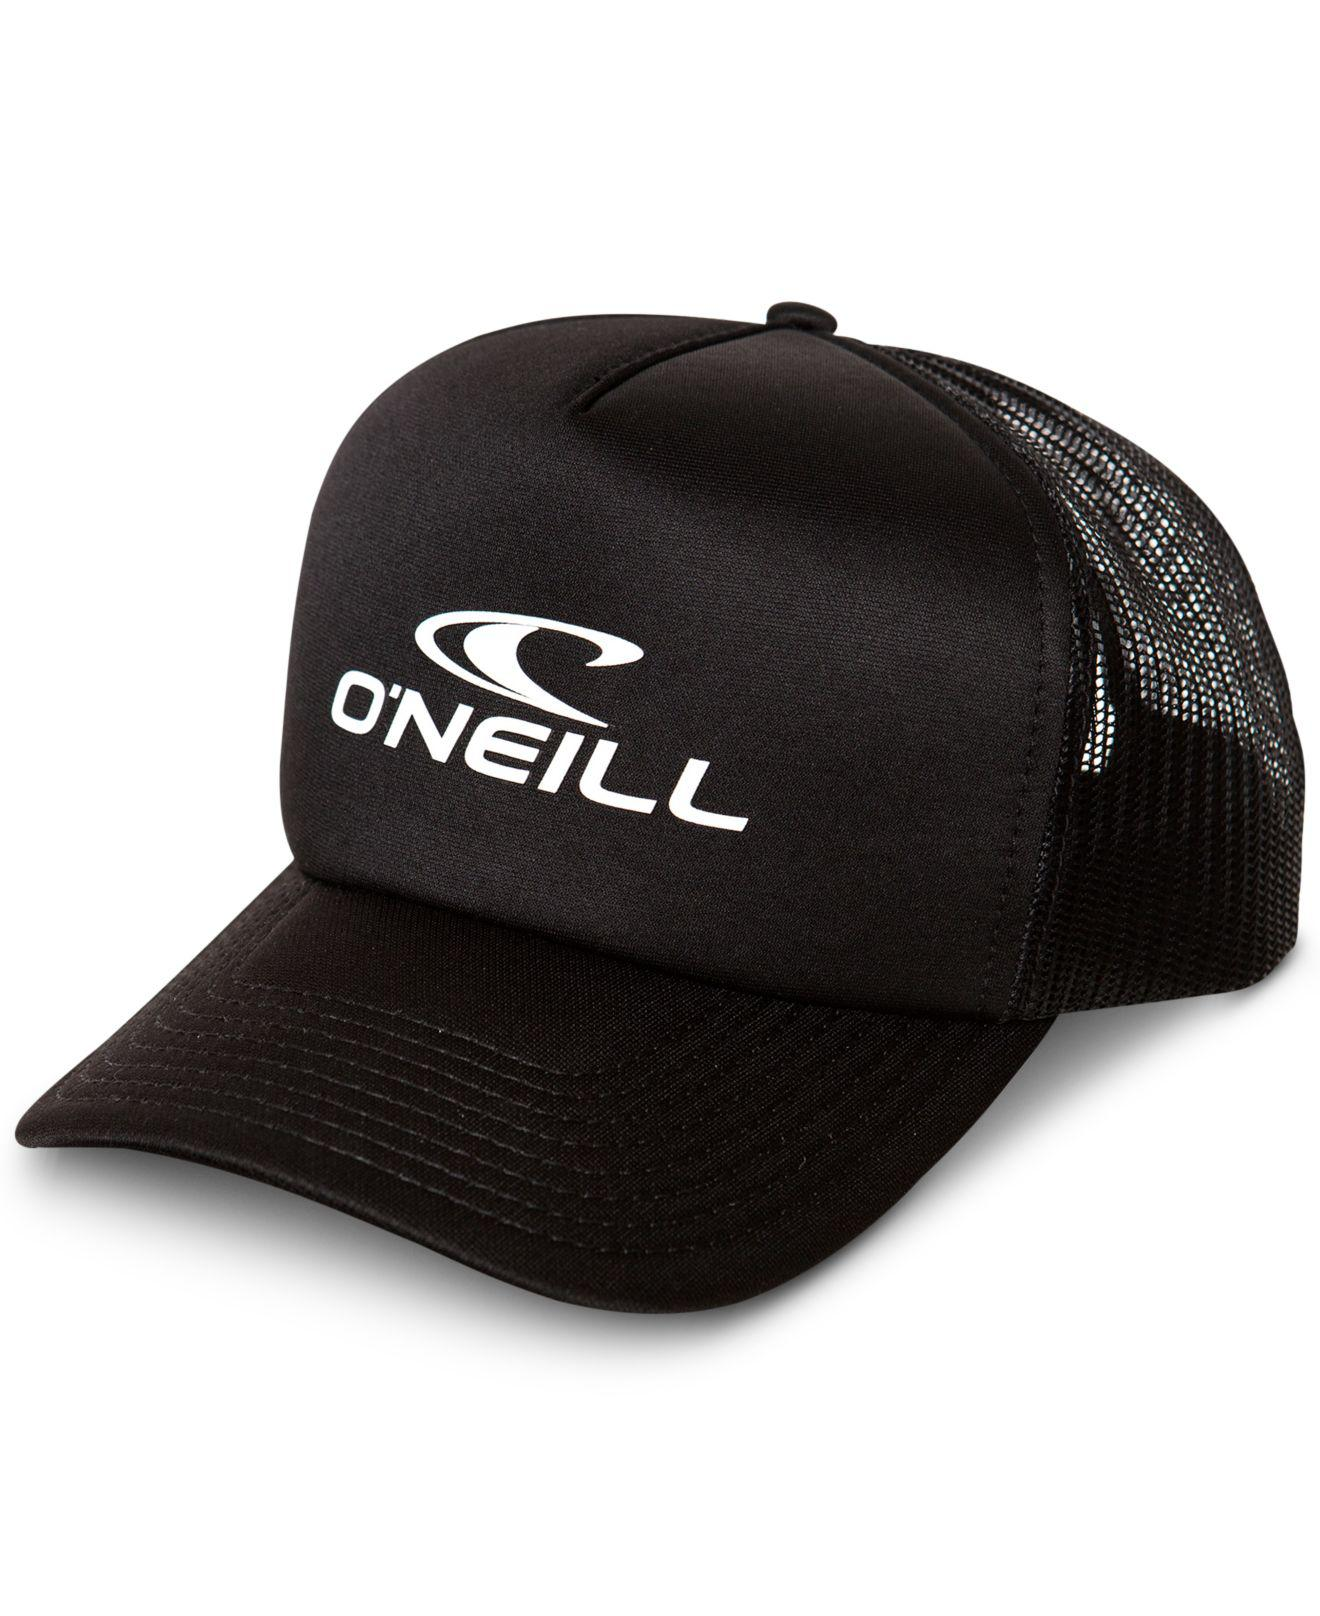 09371bda3d2 Lyst - O neill Sportswear Superior Logo Trucker Hat in Black for Men